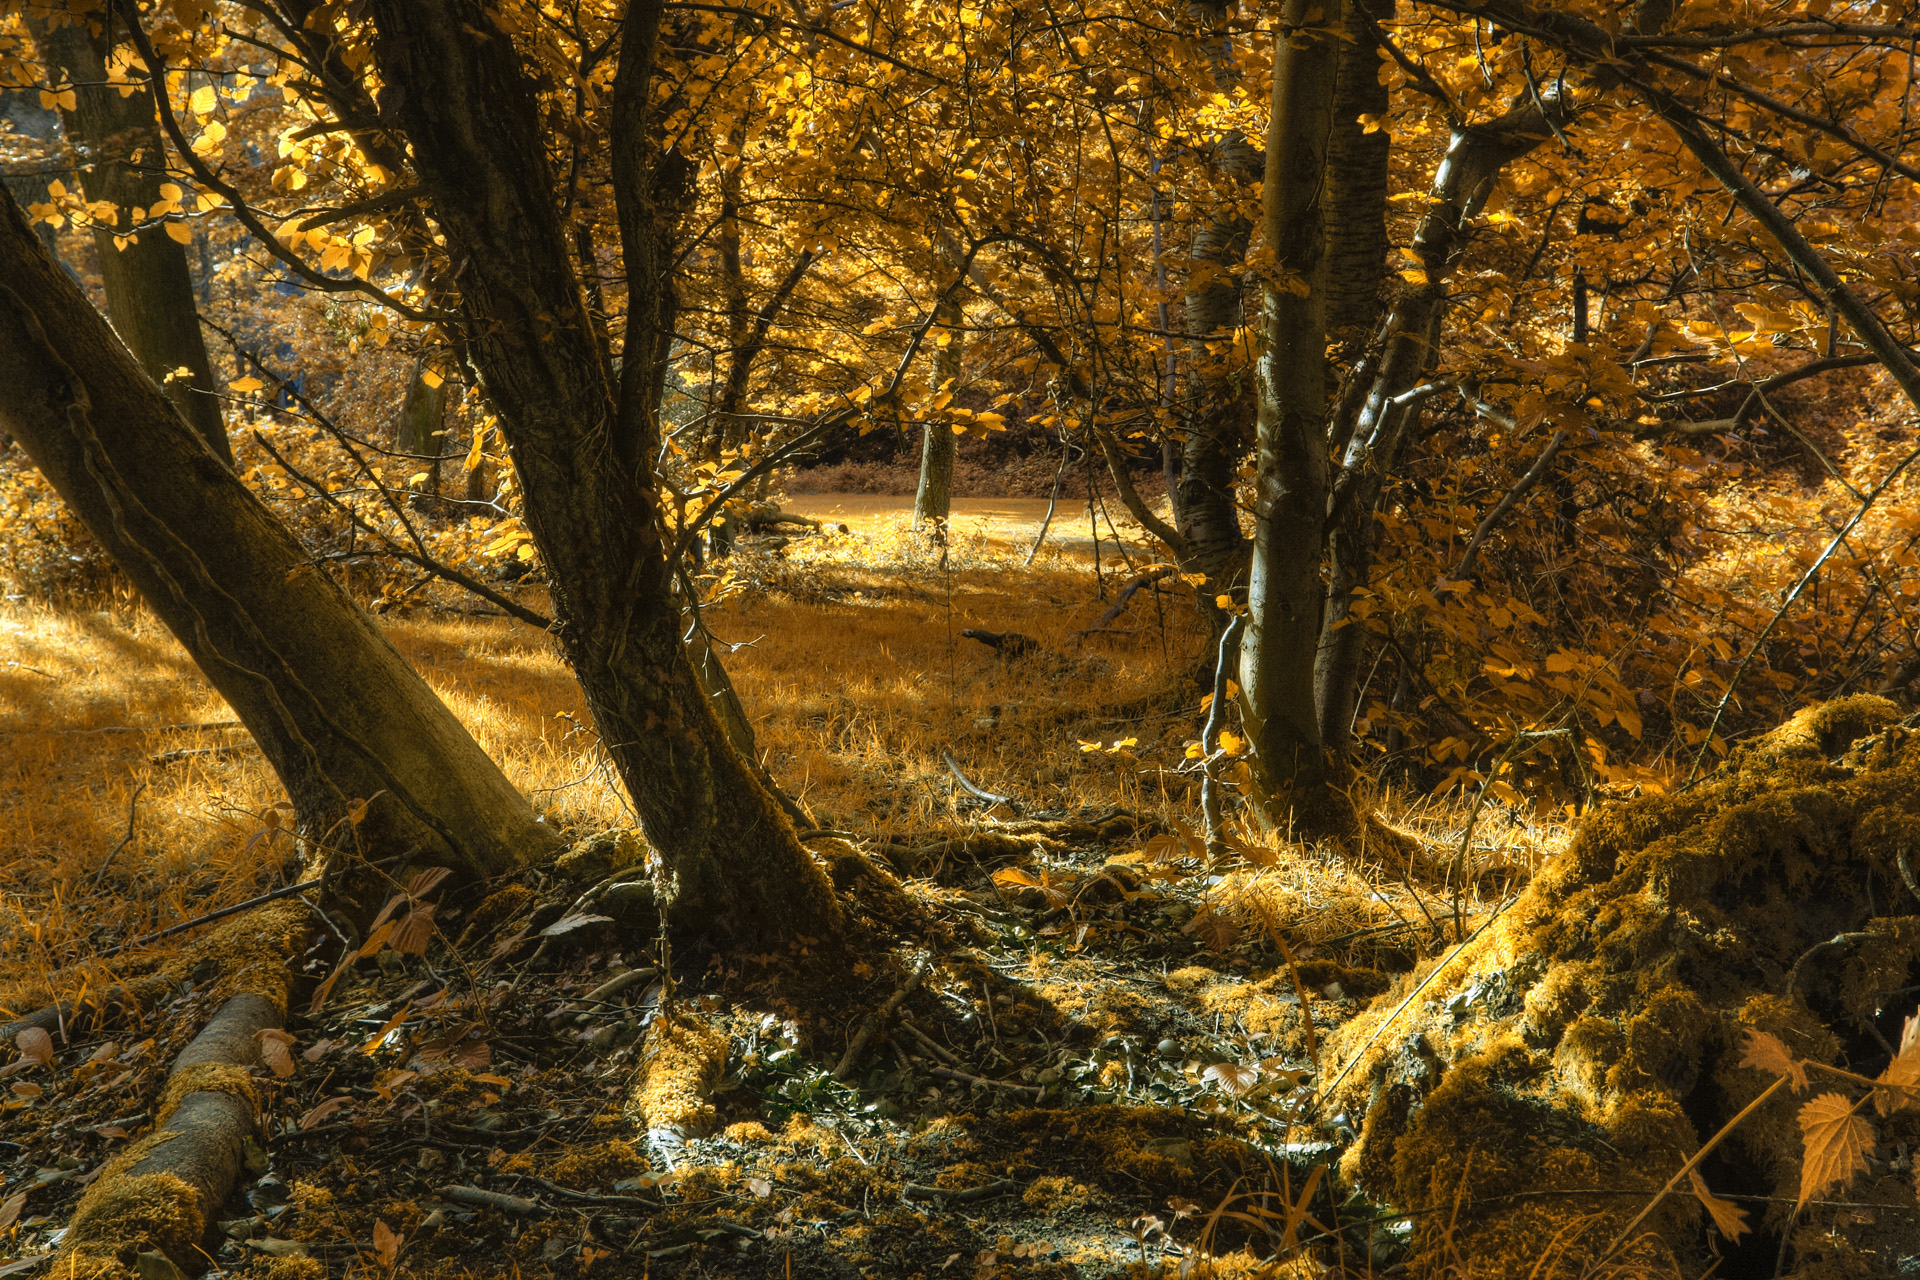 Golden Evening, Burnham Beeches, Buckinghamshire